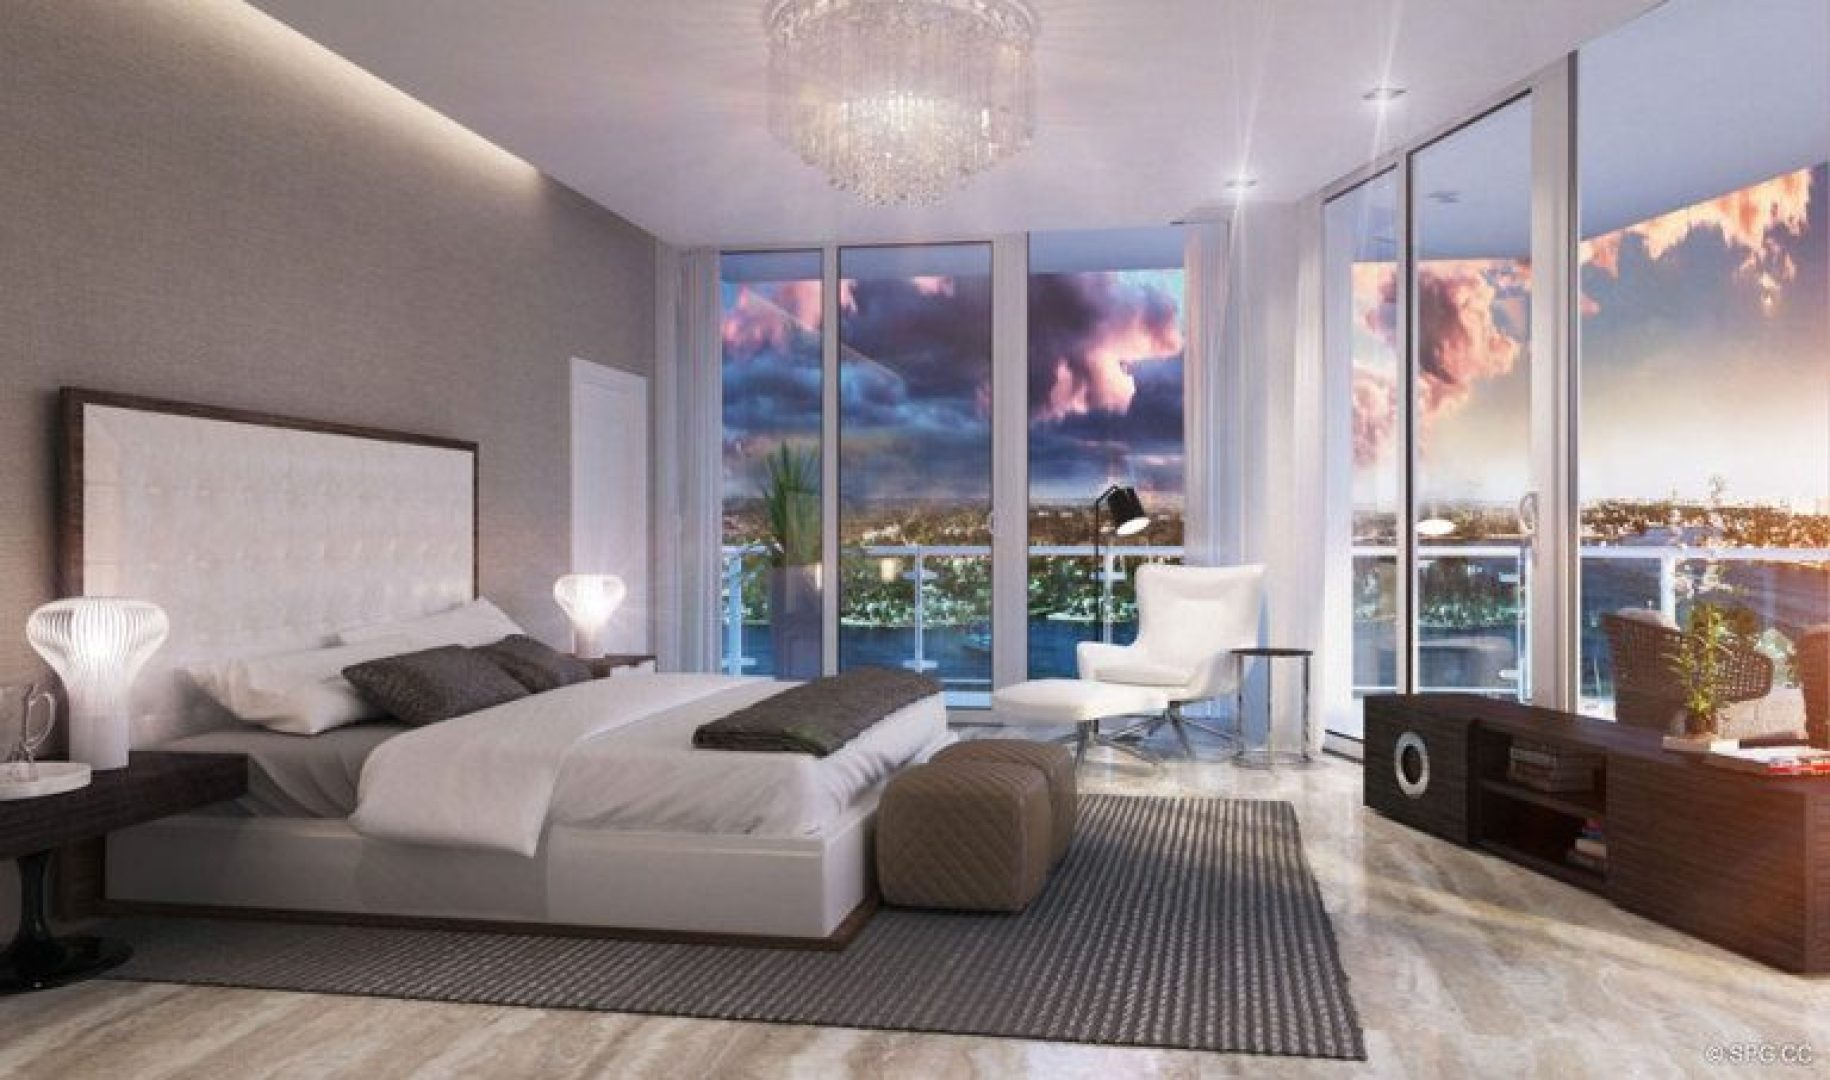 Bedroom Design At 33 Intracoastal Luxury Waterfront Condominiums In Fort Lauderdale Florida 33306